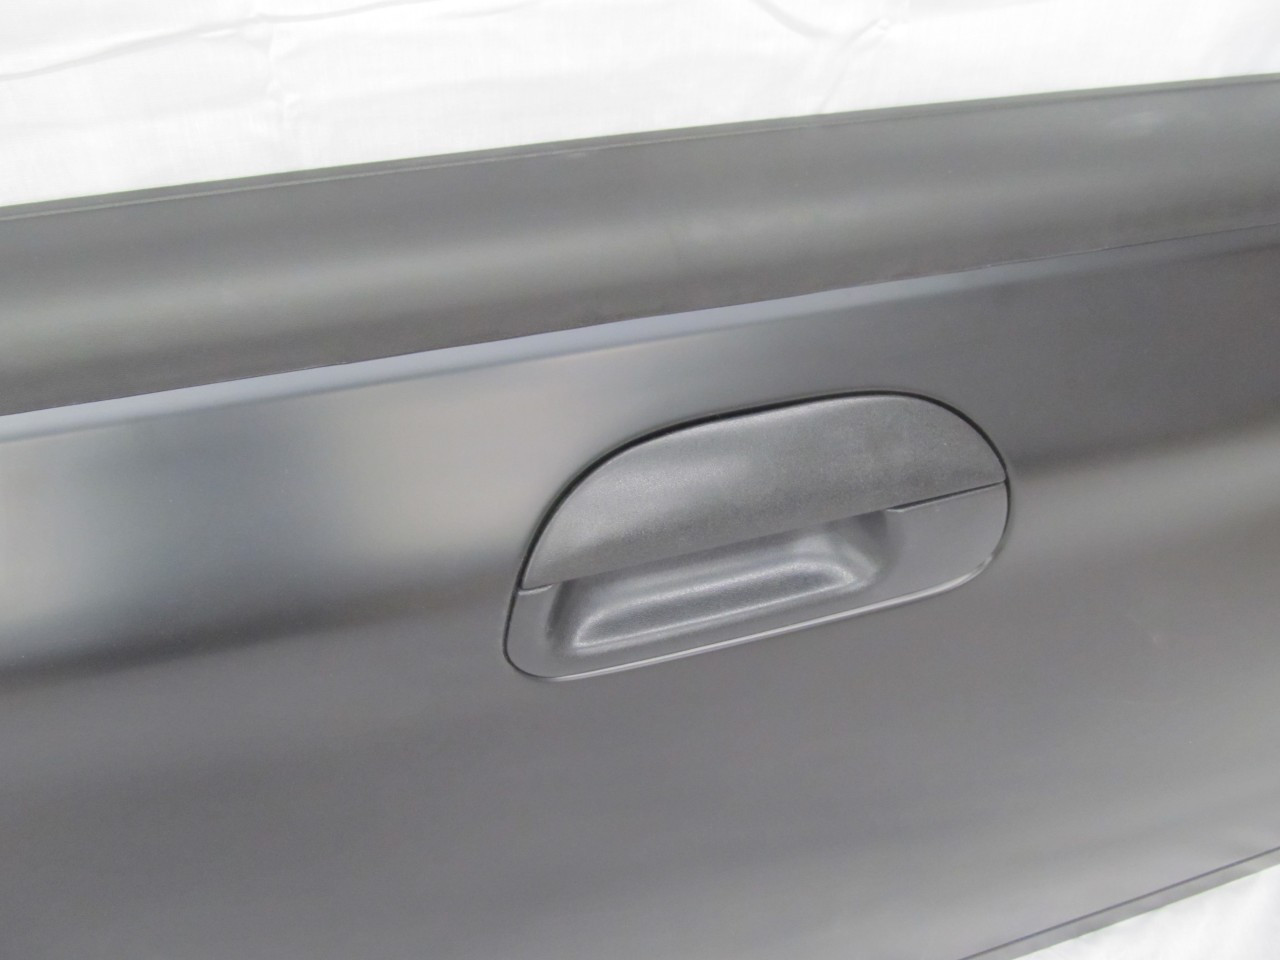 1999 2007 Ford F 250 And 350 Super Duty Tailgate Complete 2004 Larger More Photos